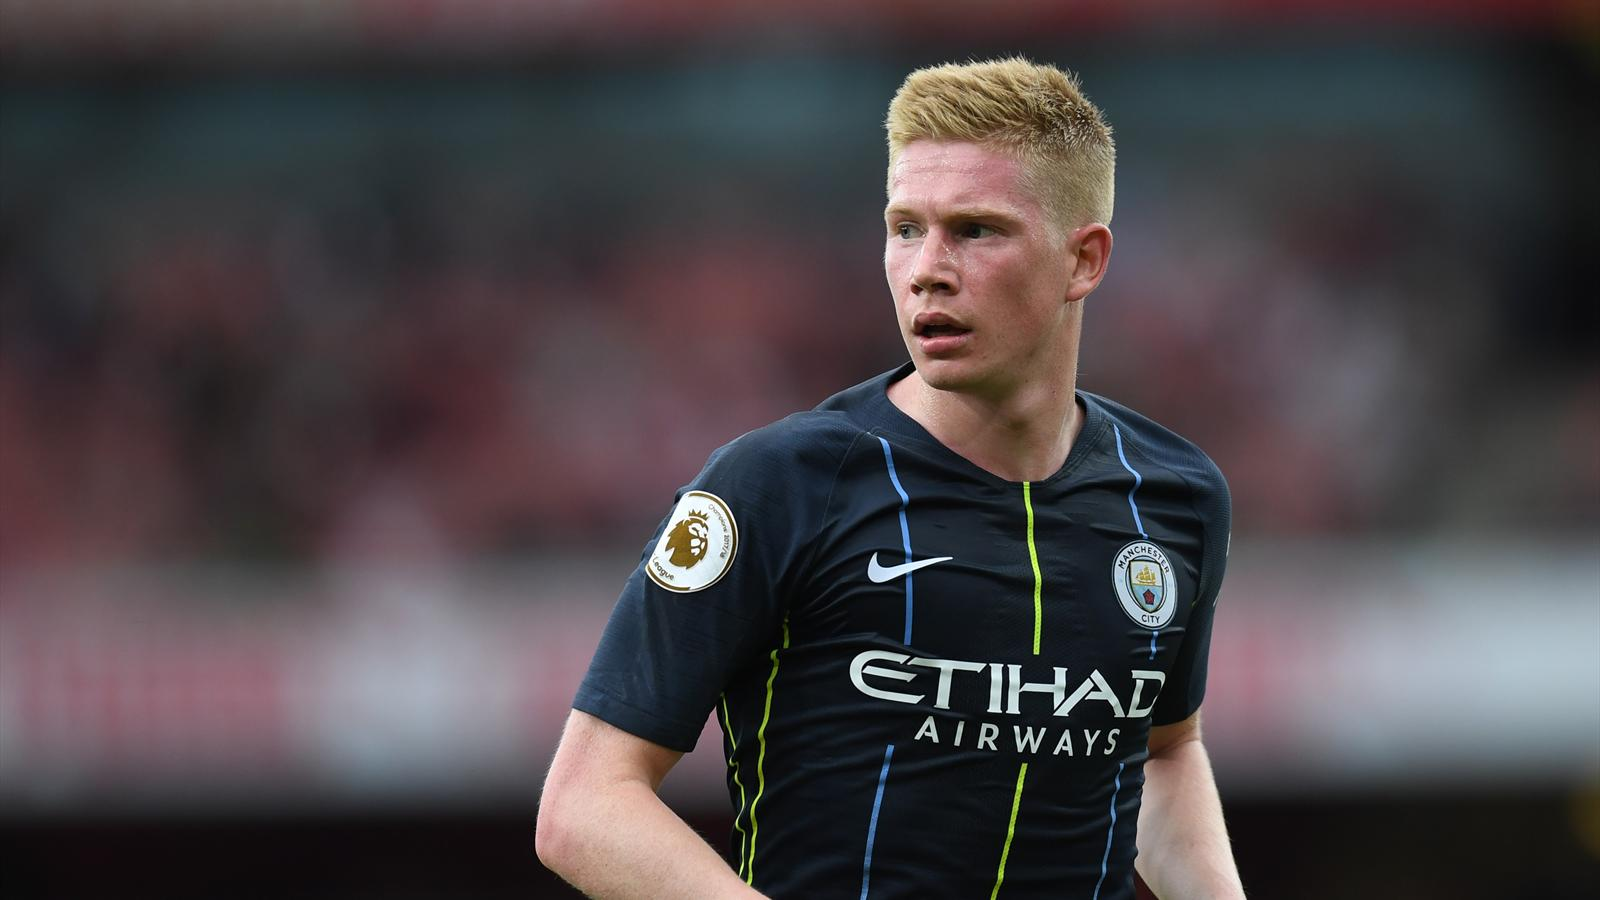 Kevin de Bruyne suffers knee injury, 'could miss several months' - Premier League 2018-2019 ...